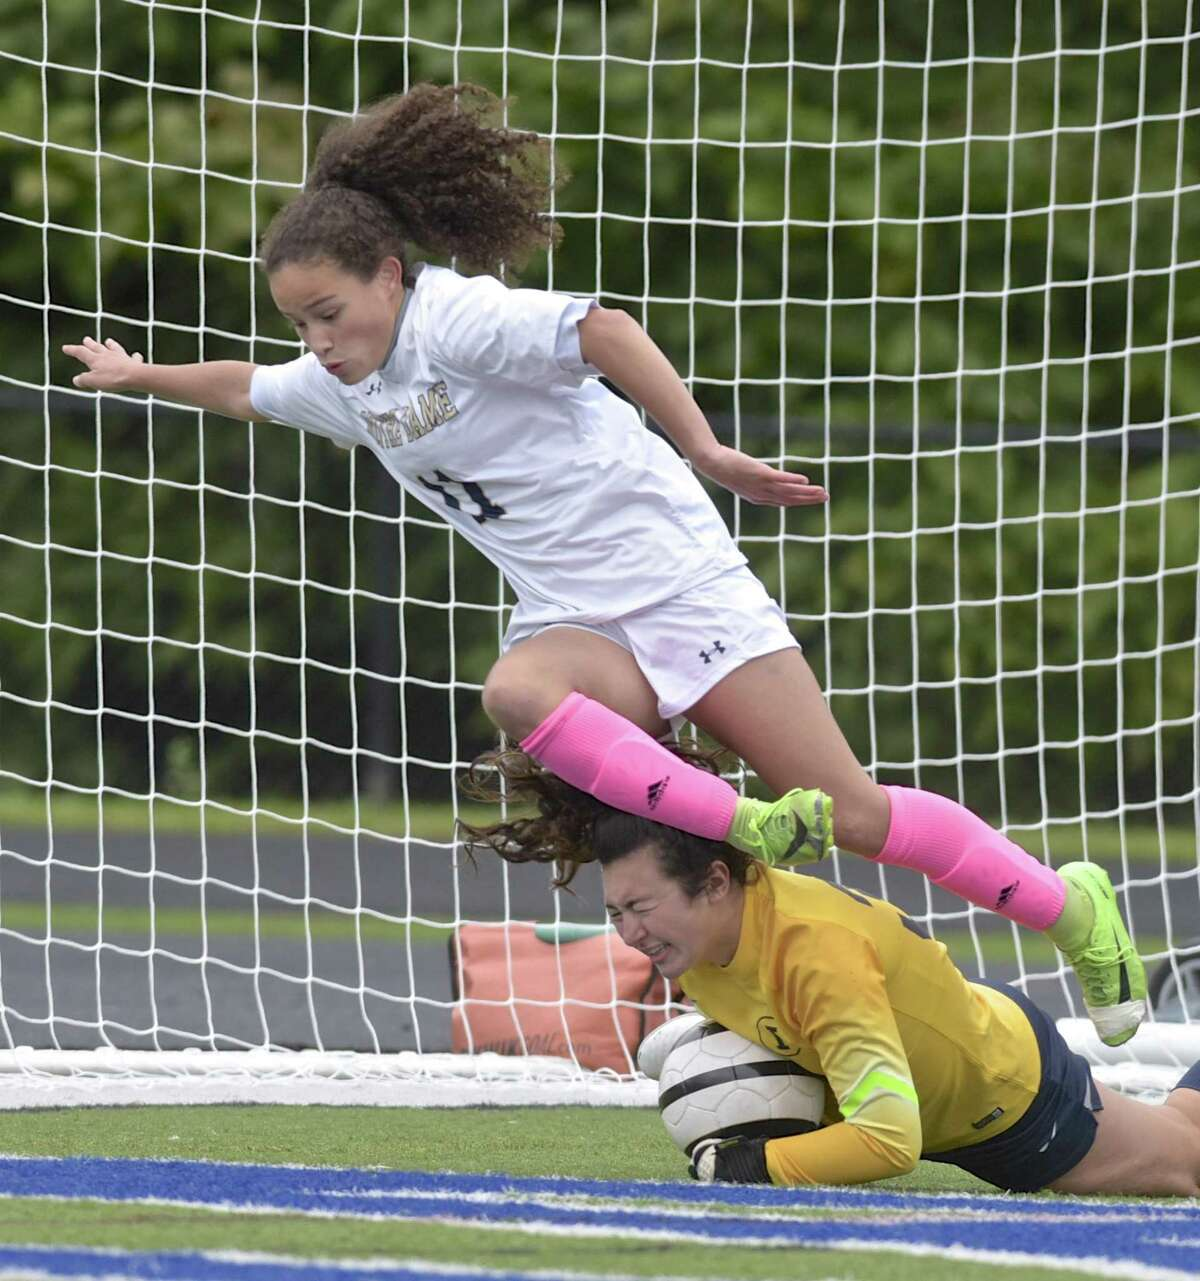 Note Dame's Toni Domingos (11) collides with Immaculate goalie Sophia Mingachos (32) as she makes a save in the girls soccer game between Notre Dame-Fairfield and Immaculate high schools, Saturday, October 13, 2018, at Immaculate High School, Danbury, Conn.